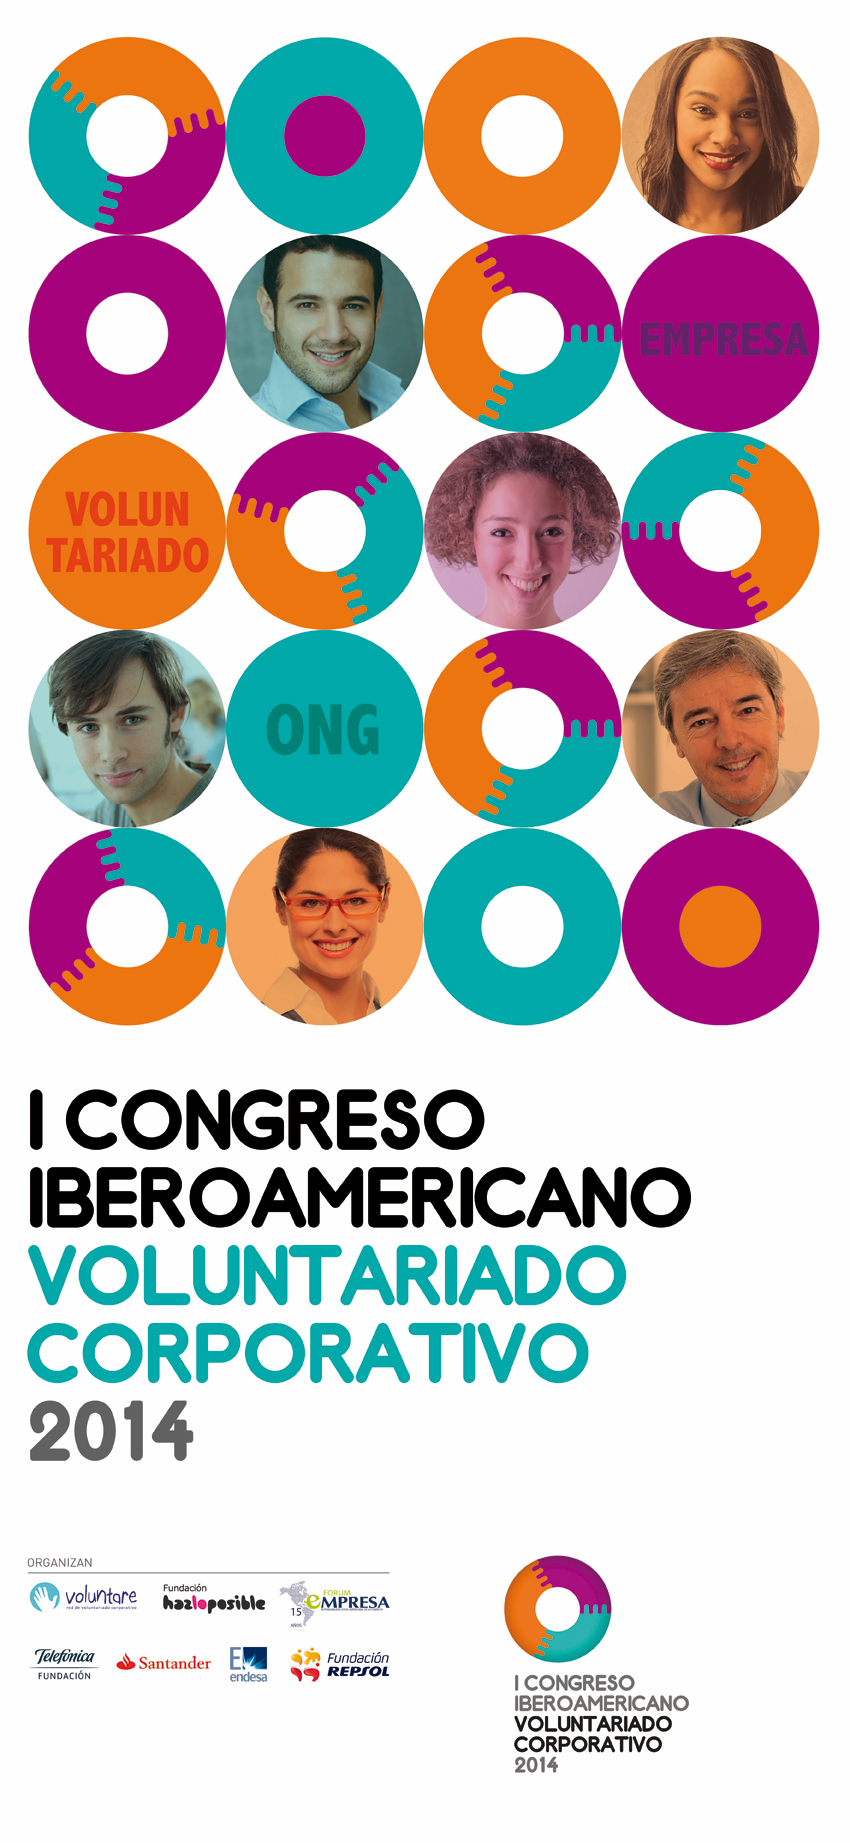 Congreso Iberoamericano Voluntariado Corporativo